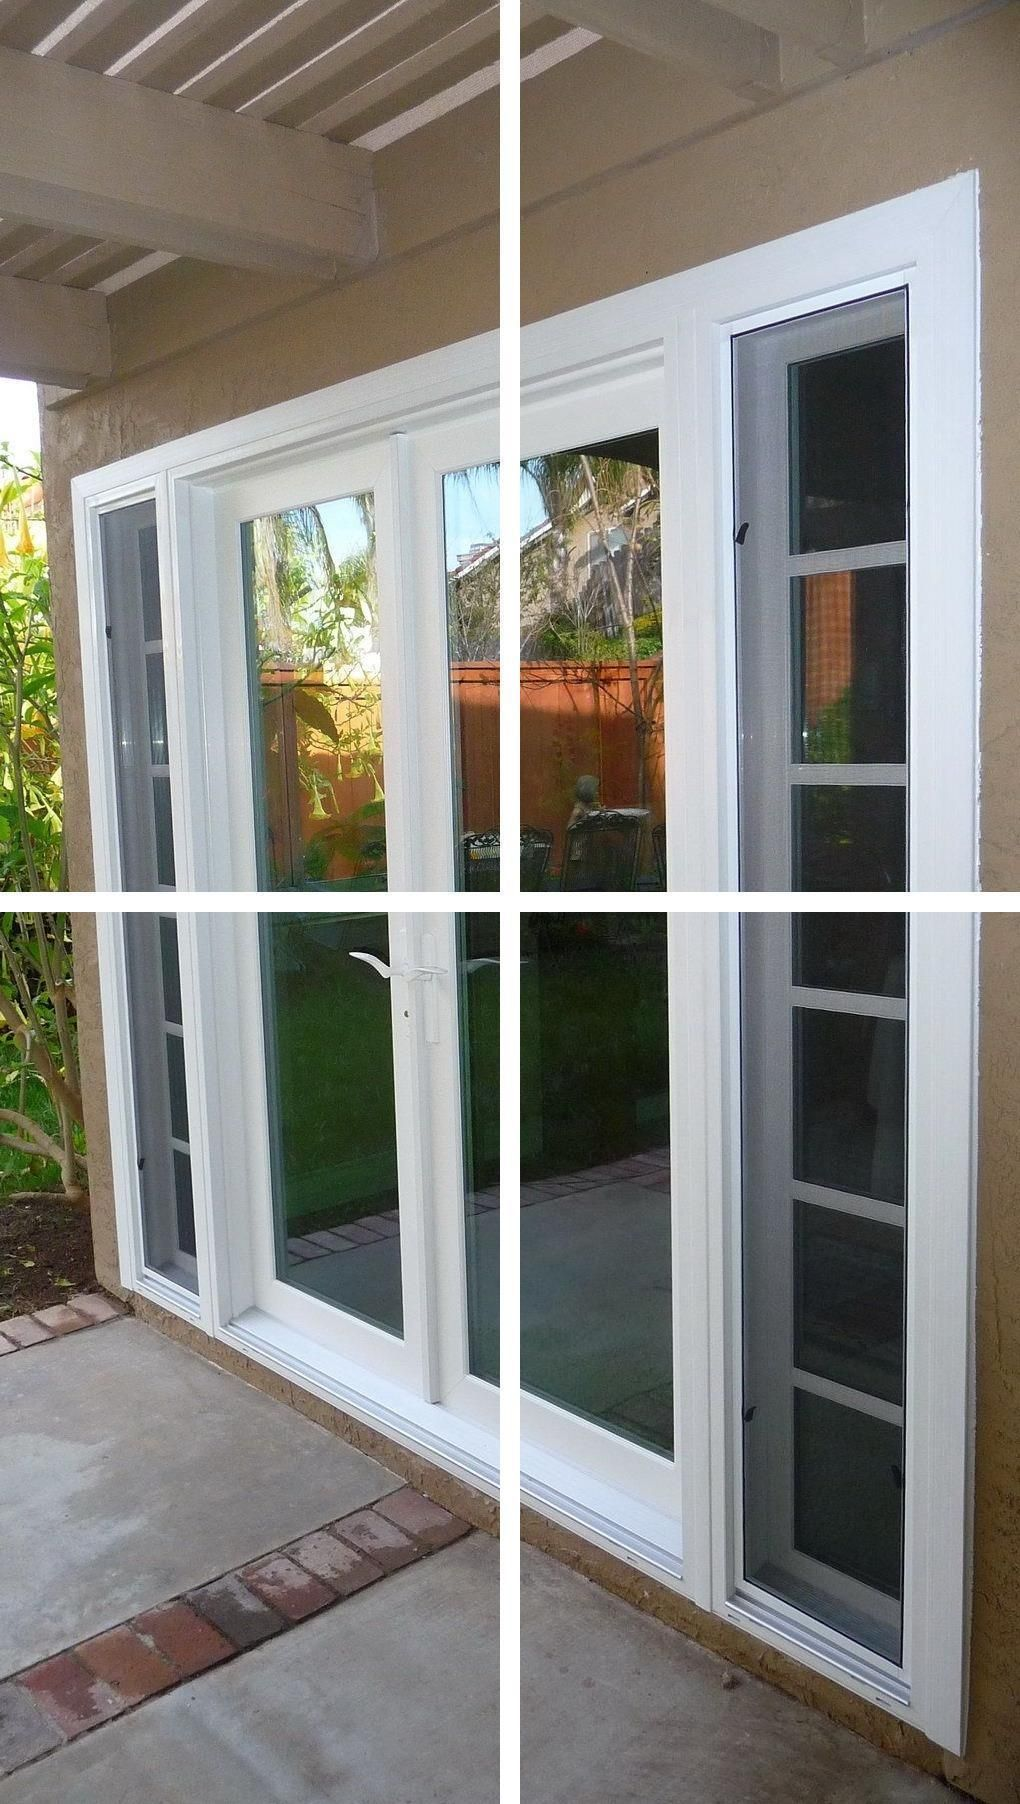 Oak French Doors Entrance Doors 4 Foot Interior French Doors French Doors French Doors Patio Sliding Patio Doors